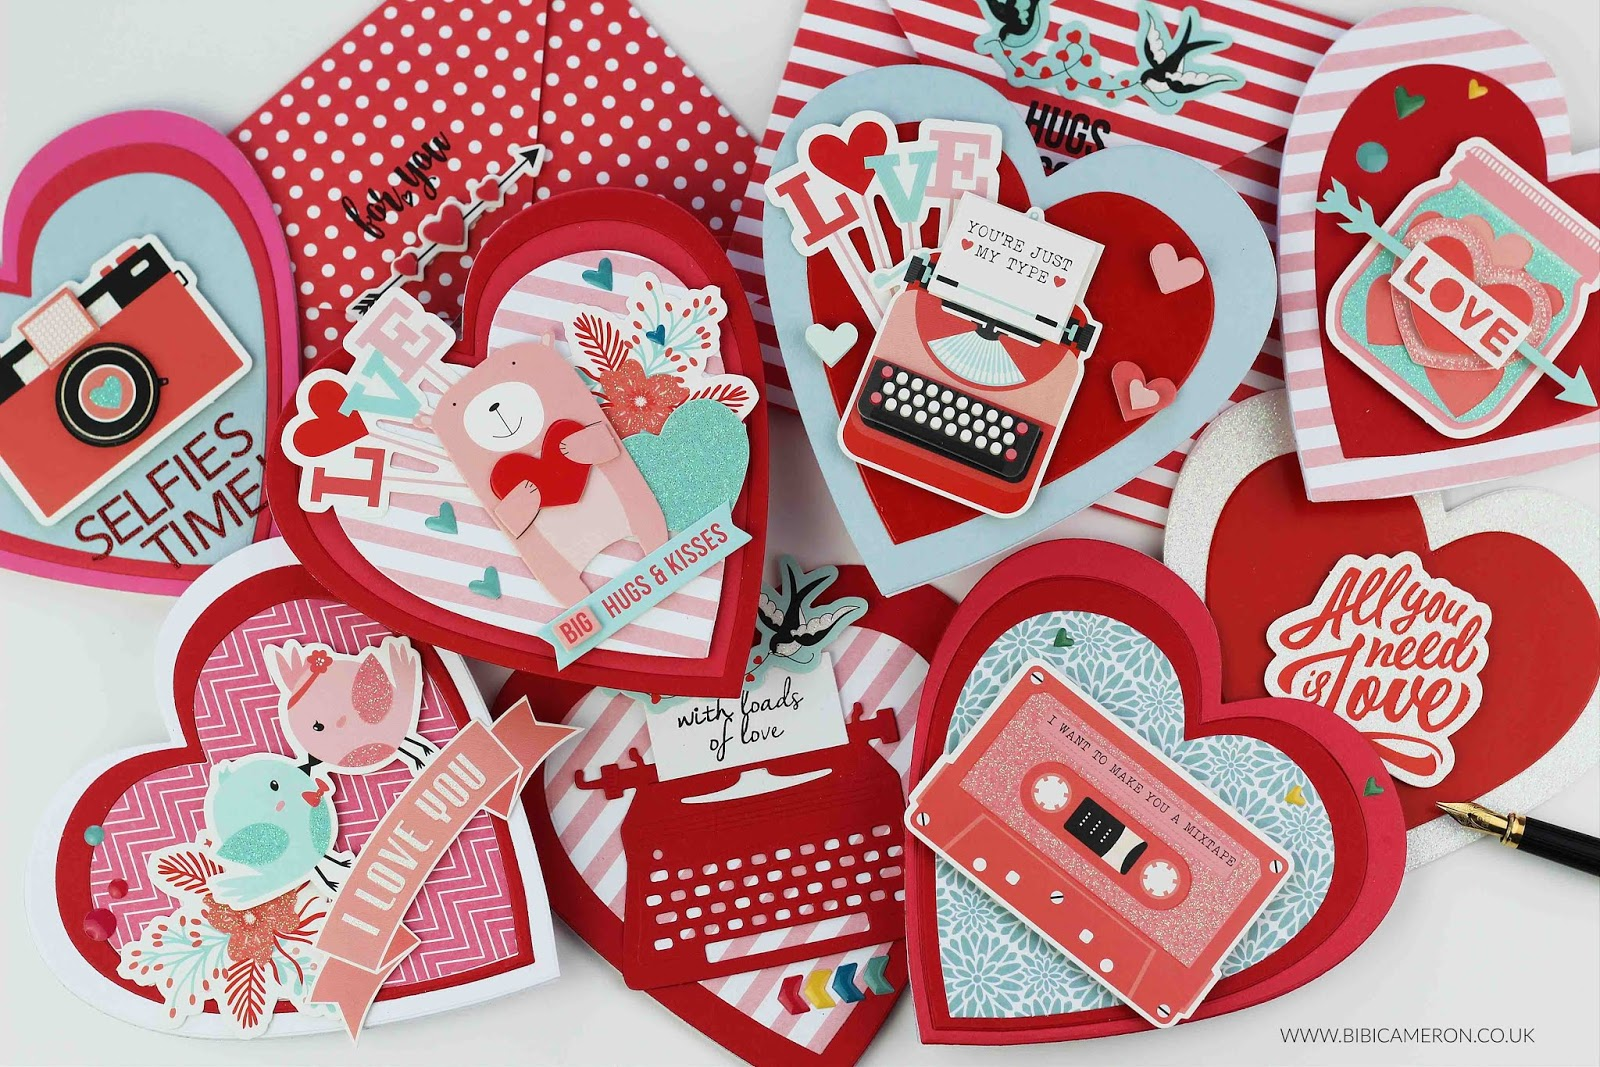 11 Valentine's cards ideas + Spellbinders Card Kit of the Month Jan 2019